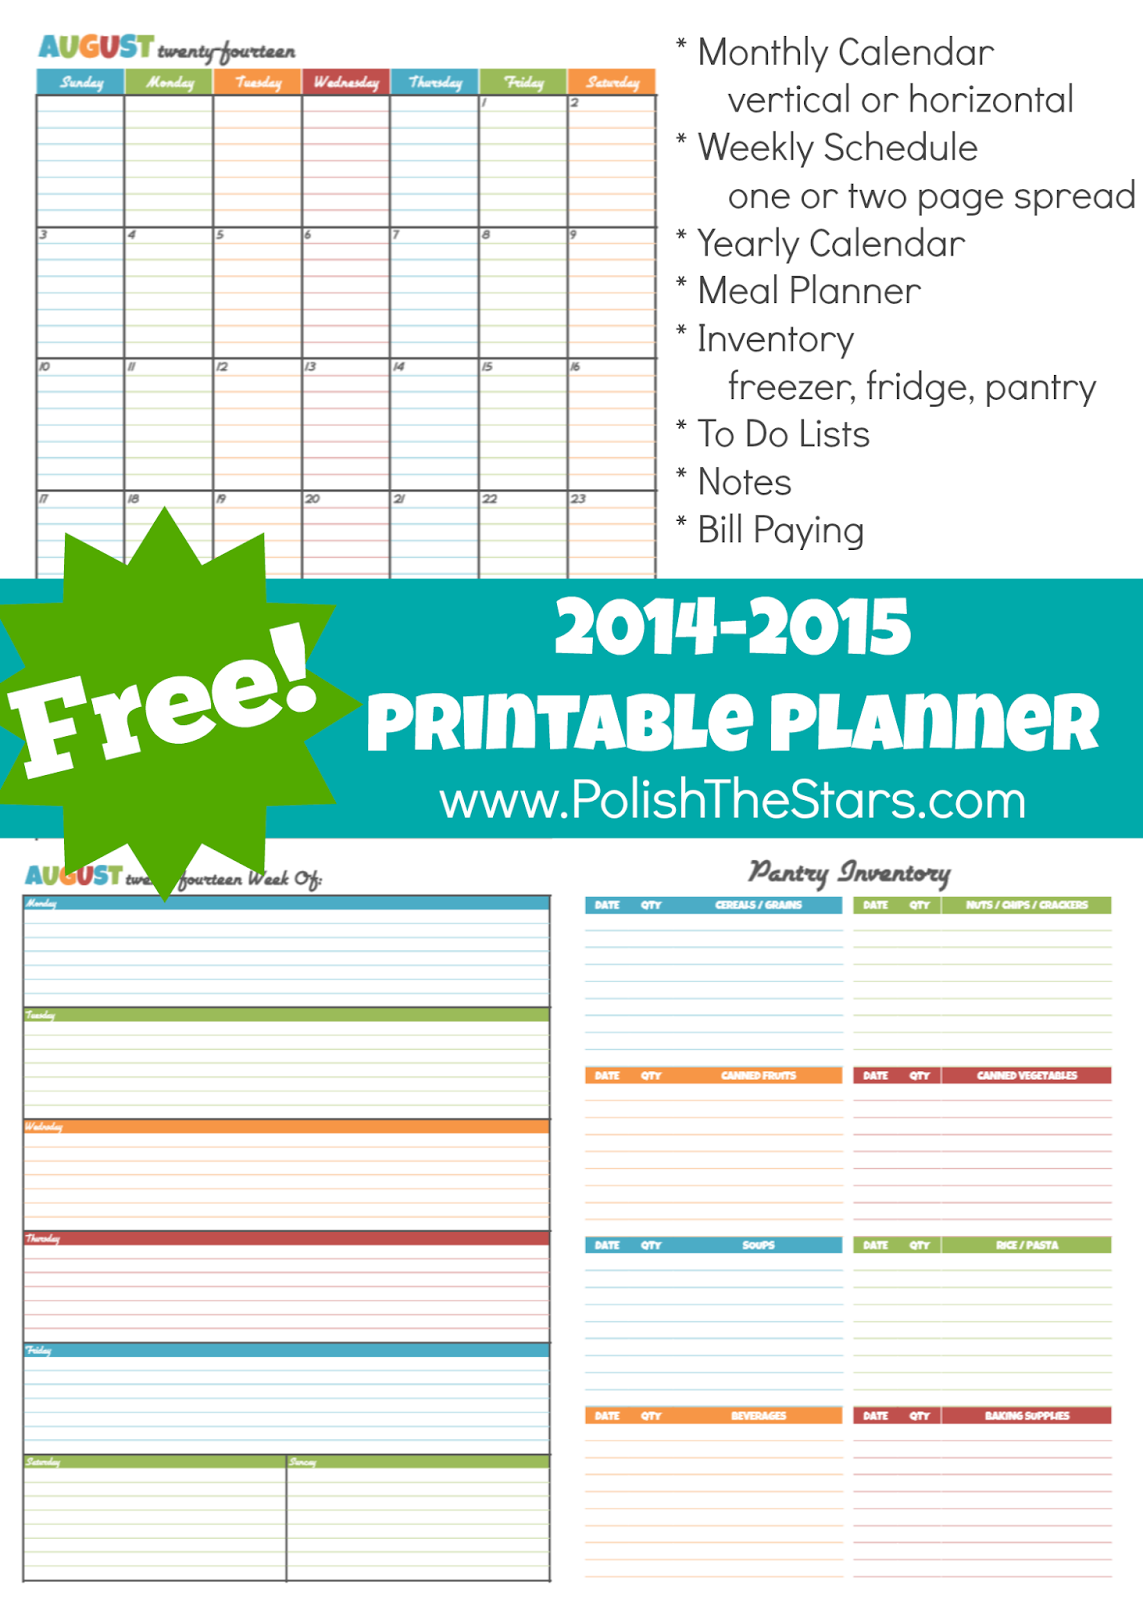 Free House Management Printable Planner